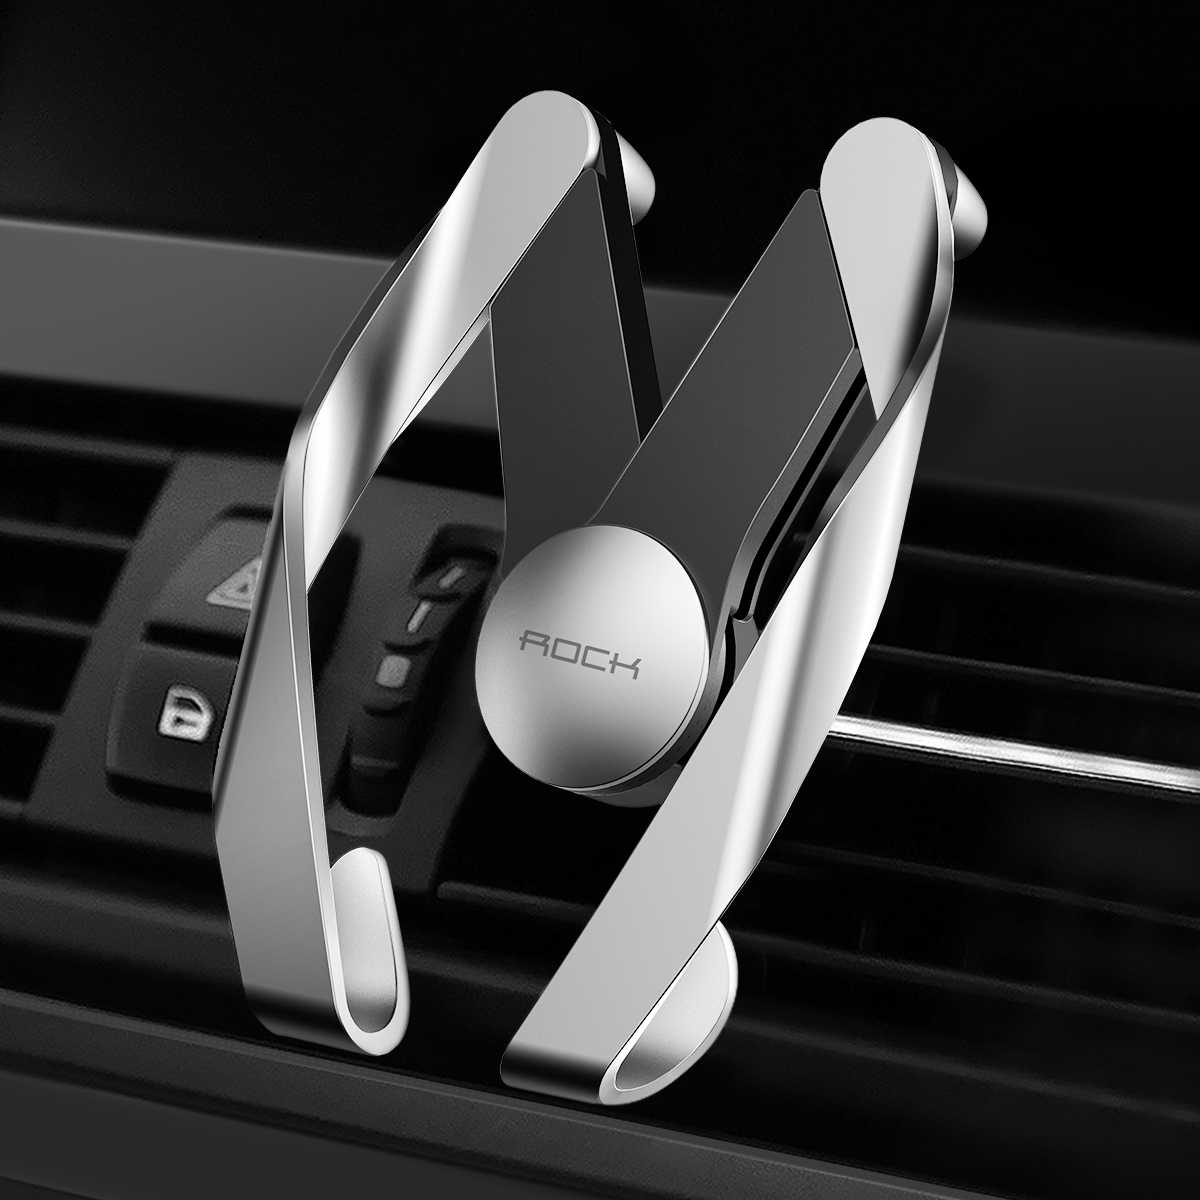 rock universal autobot mobile vent phone car holder for iphone samsung car abs material air outlet [ 1200 x 1200 Pixel ]